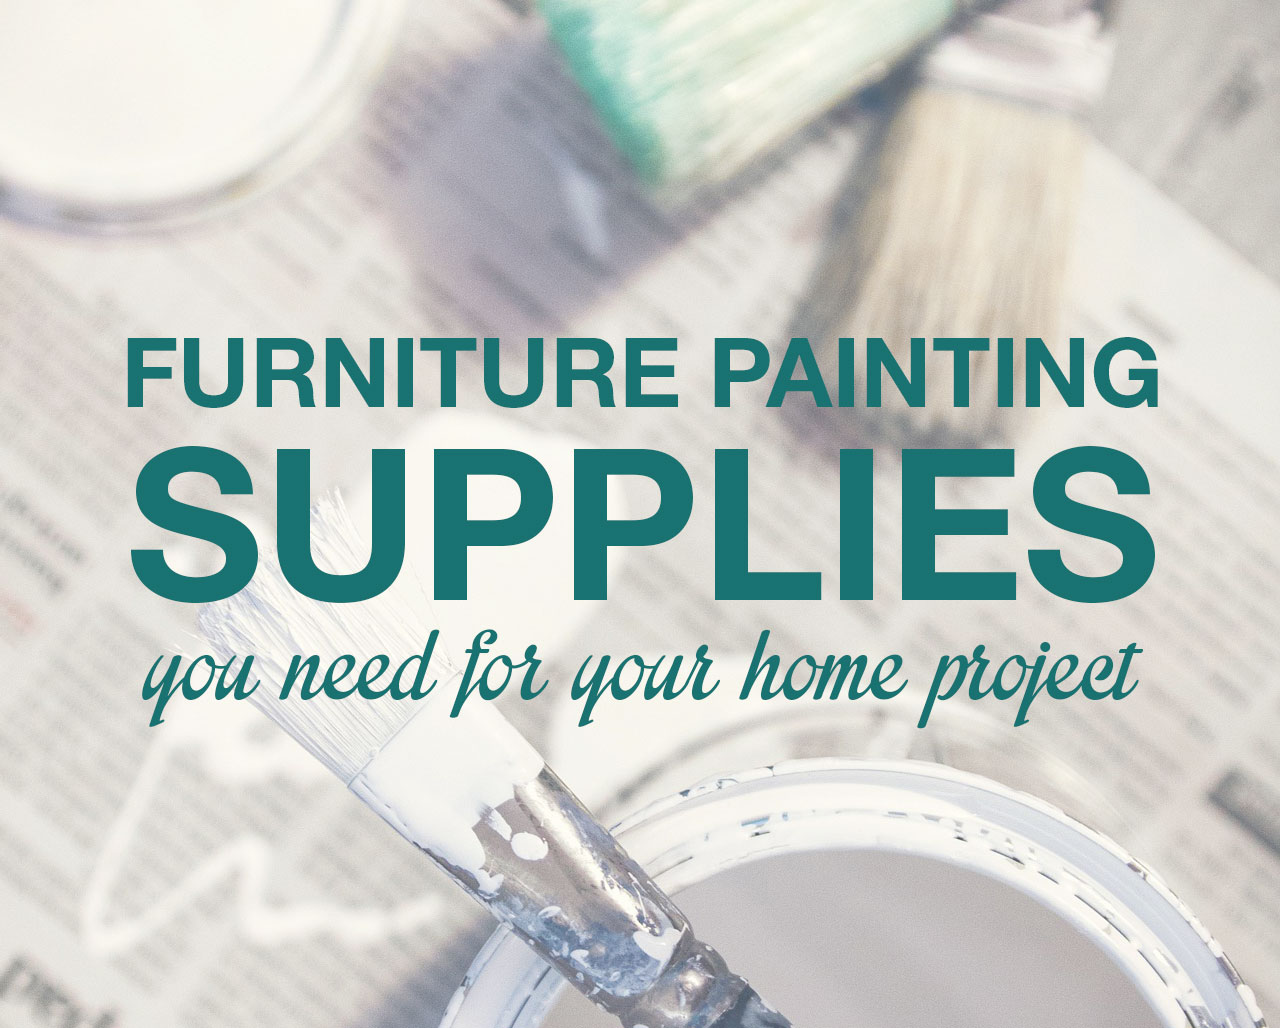 furniture painting supplies